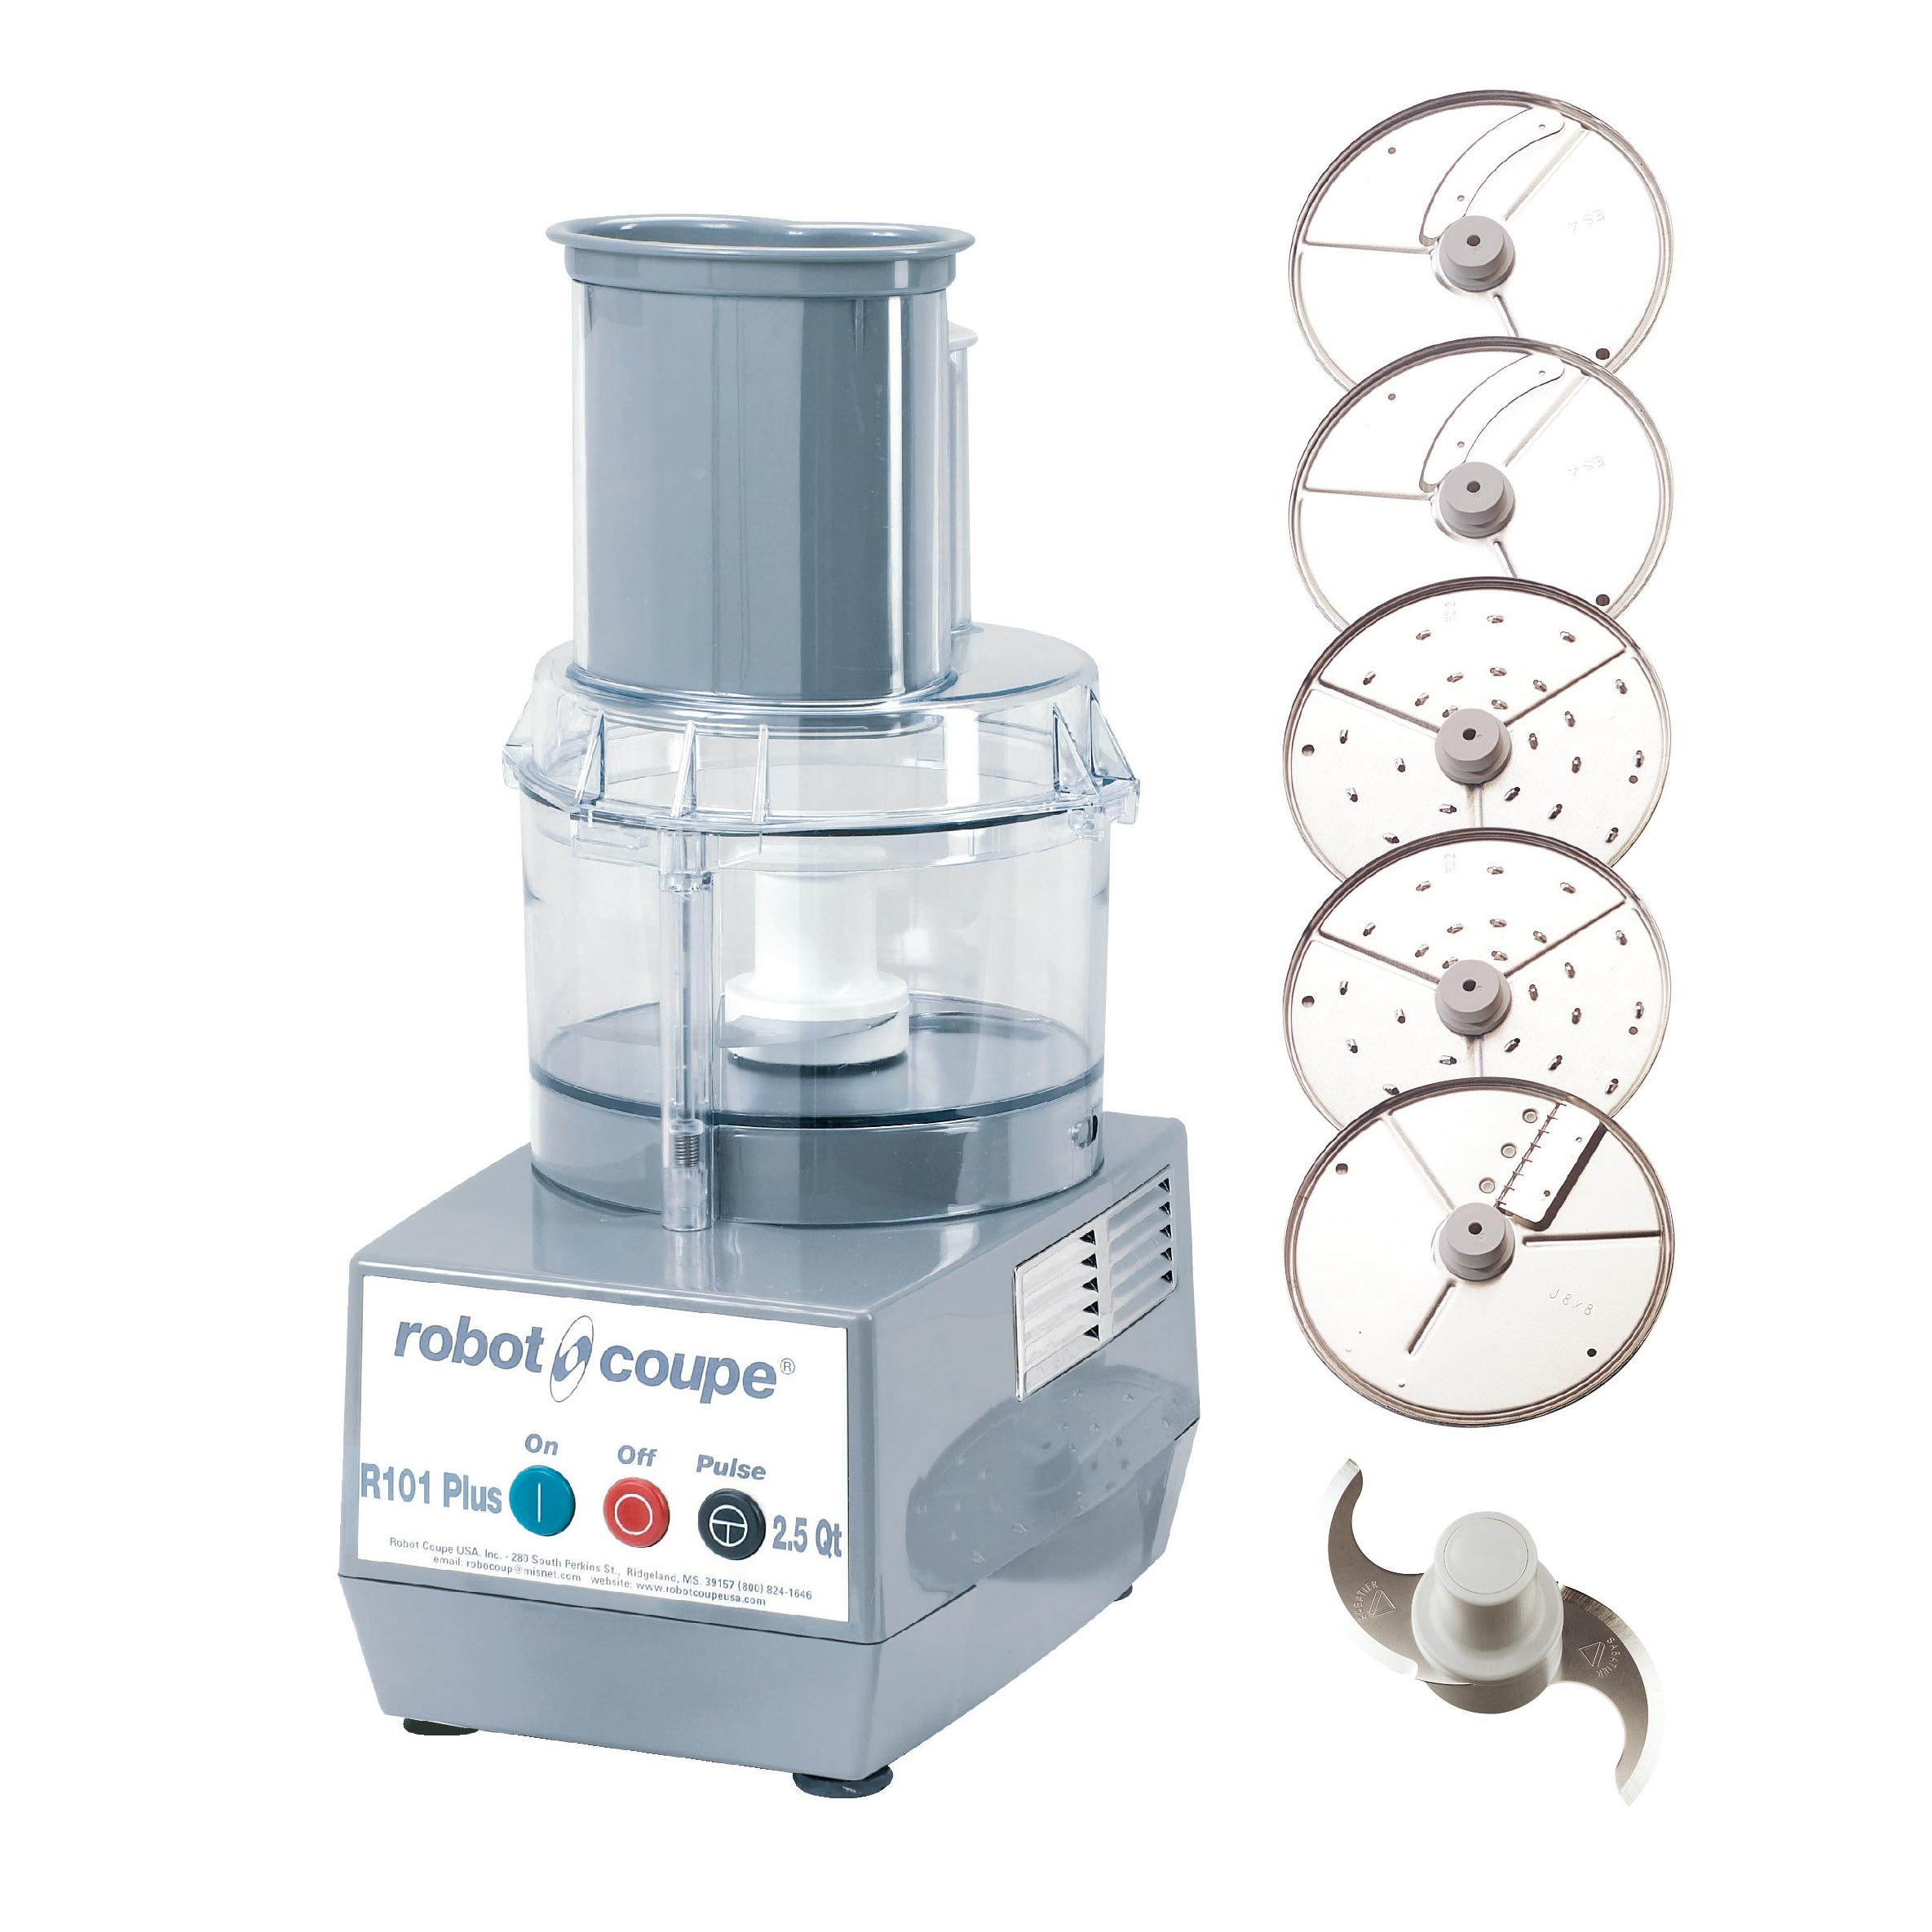 Robot Coupe R101P PLUS food processor, benchtop / countertop